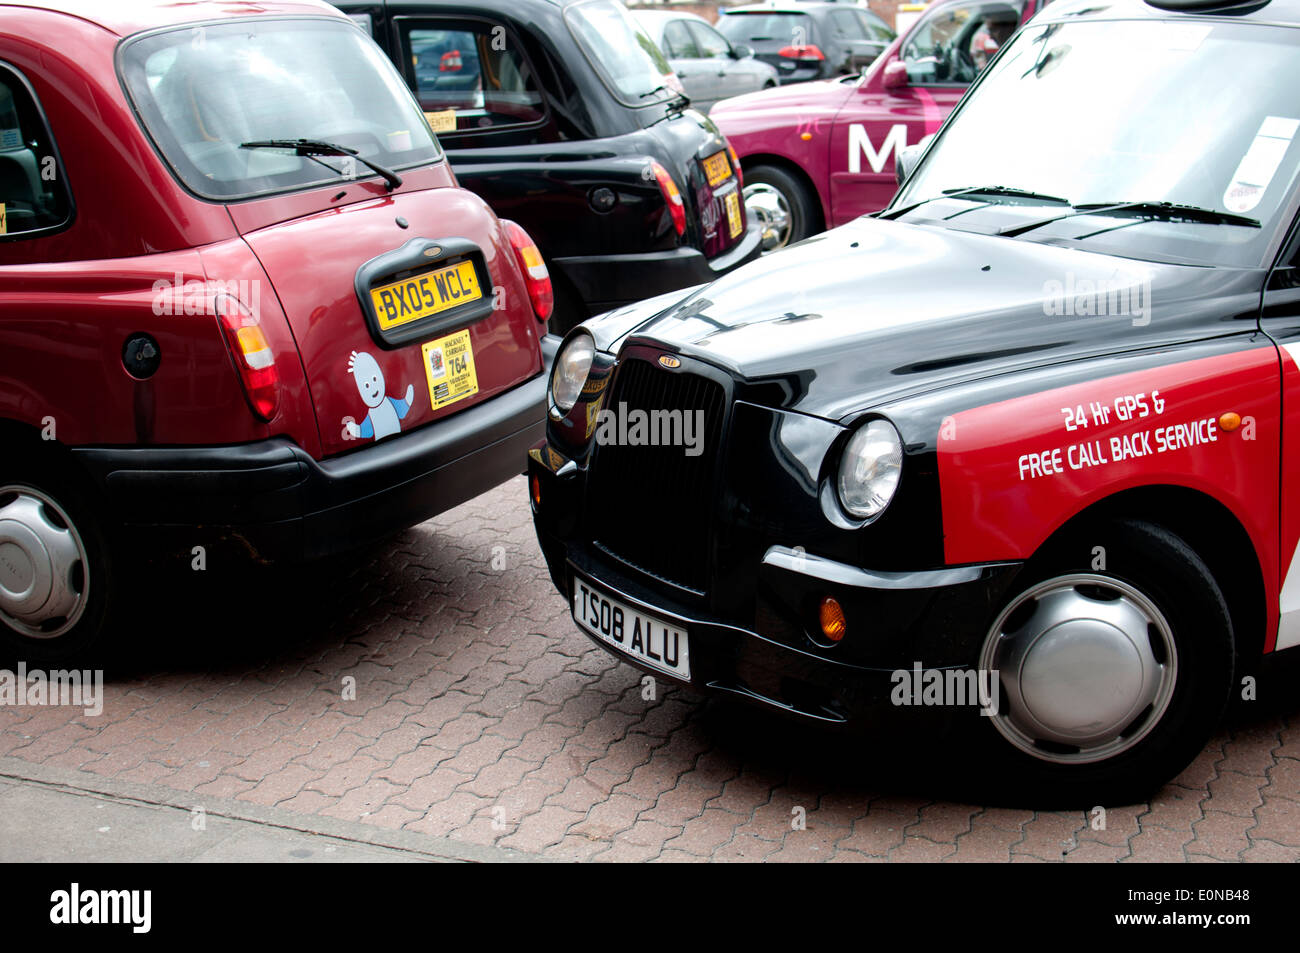 Taxis outside Coventry railway station, UK - Stock Image